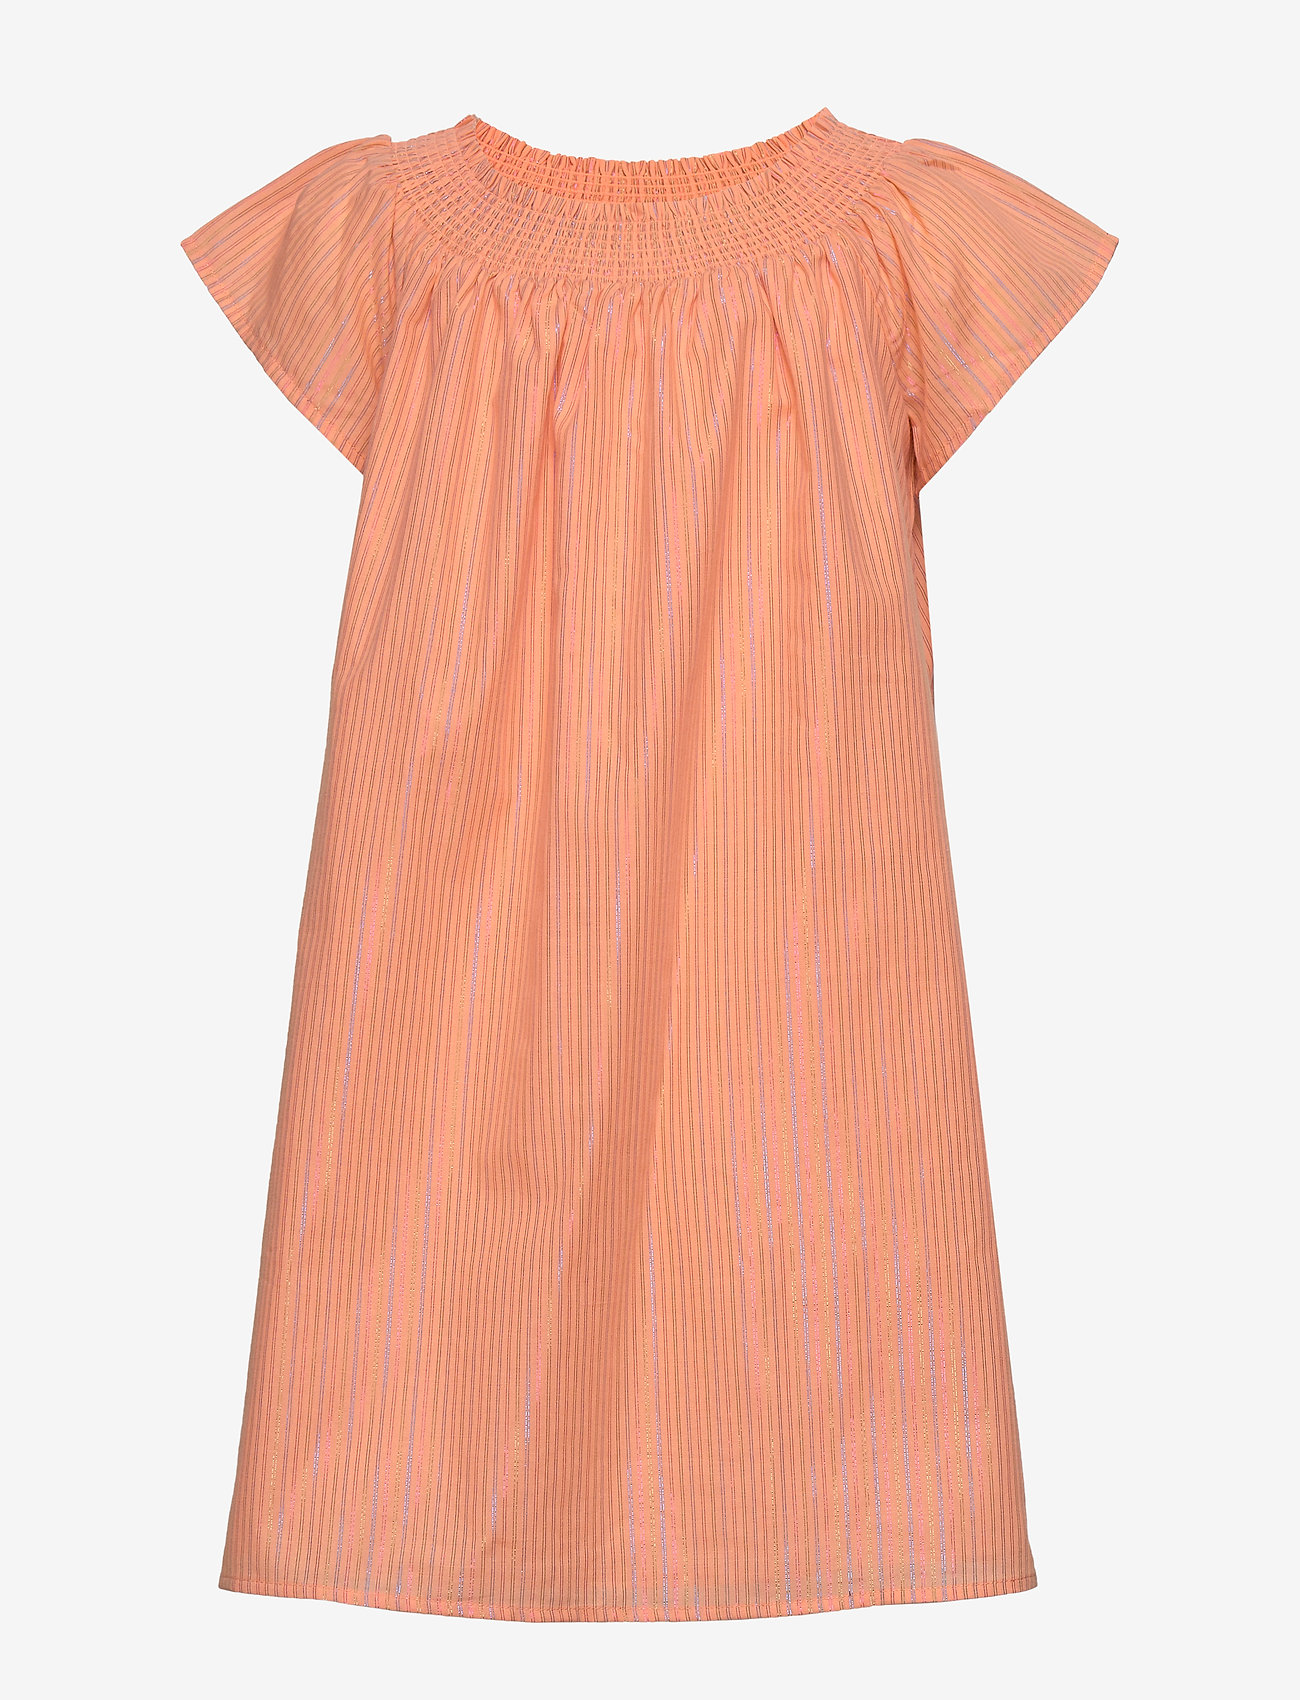 Tommy Hilfiger - LUREX STRIPE DRESS S/S - robes - melon orange - 0